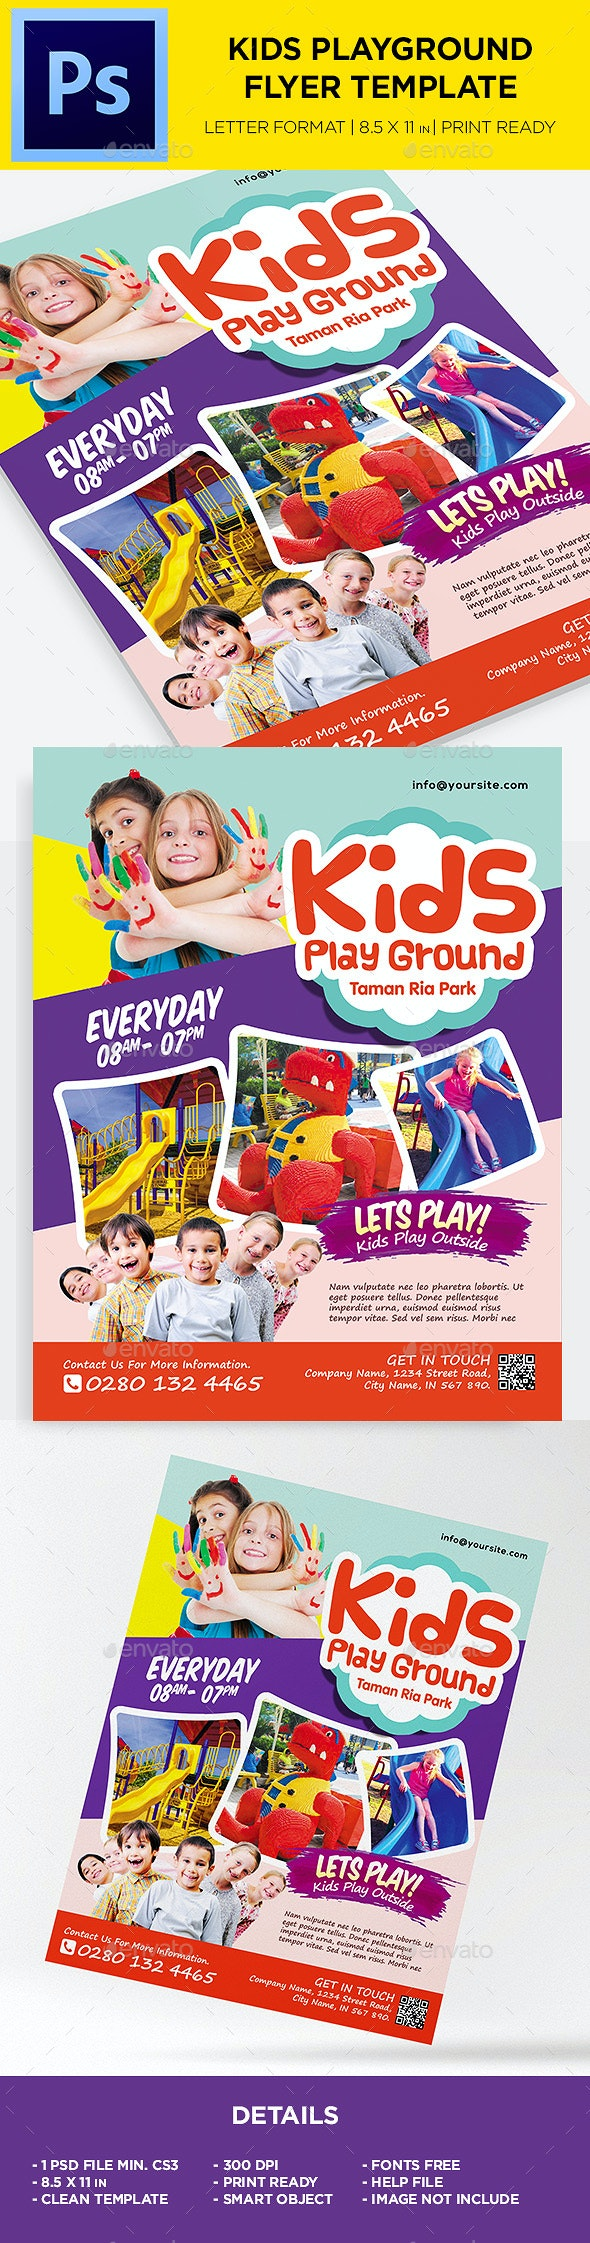 Kids Activities Flyer -  Kids Play Ground - Corporate Flyers